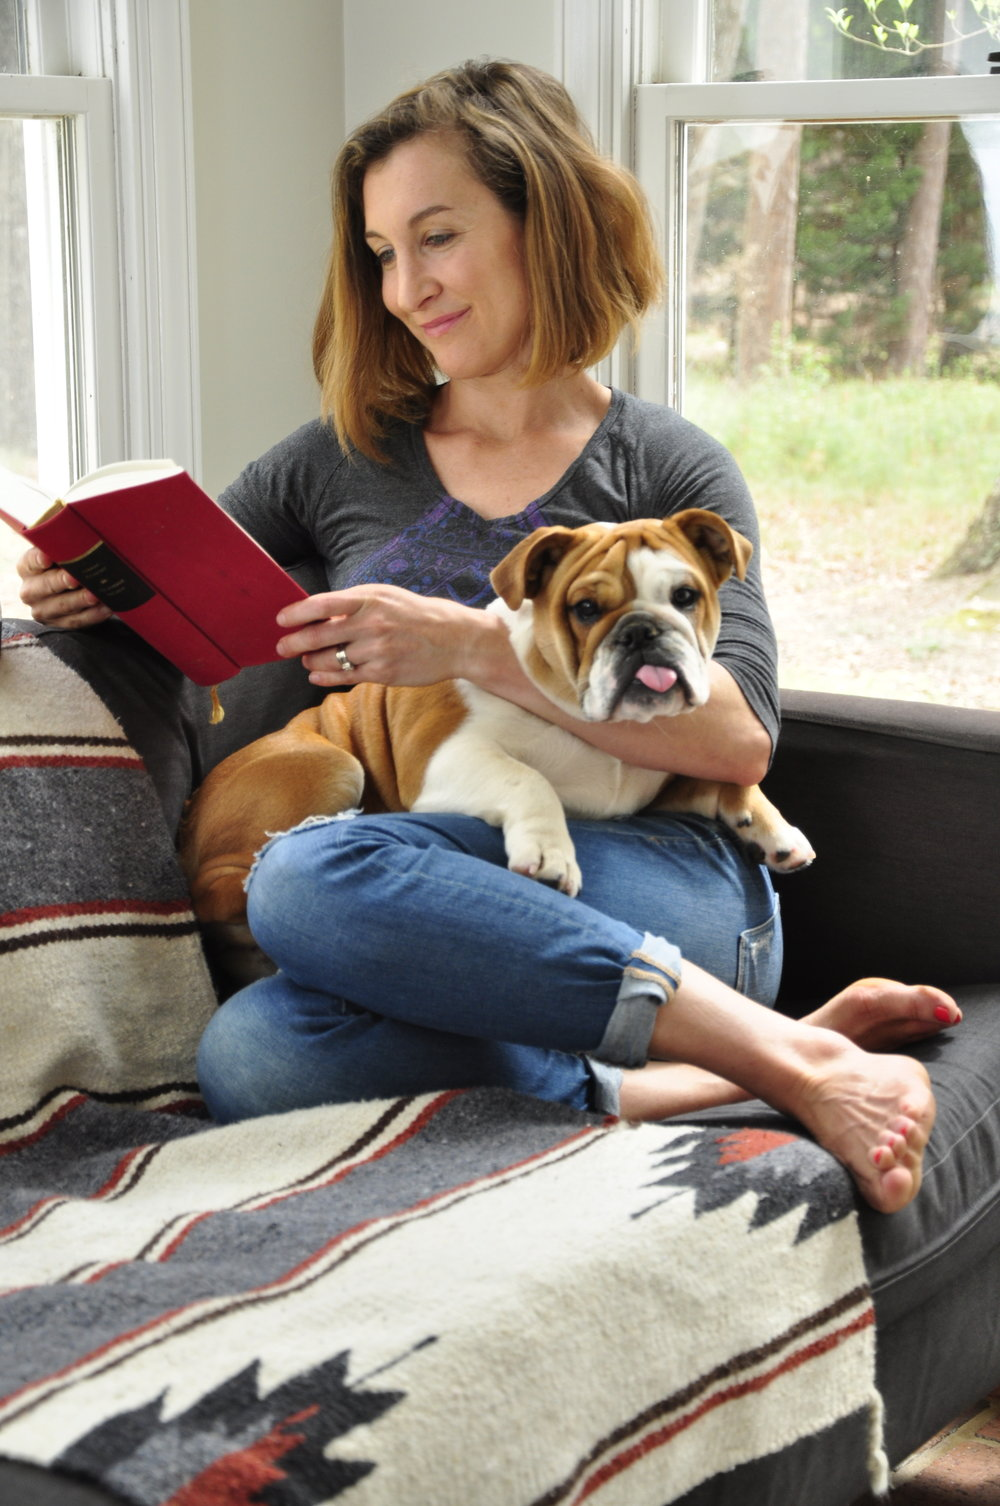 A happy full life is reading a book while you force your dog to cuddle with you.